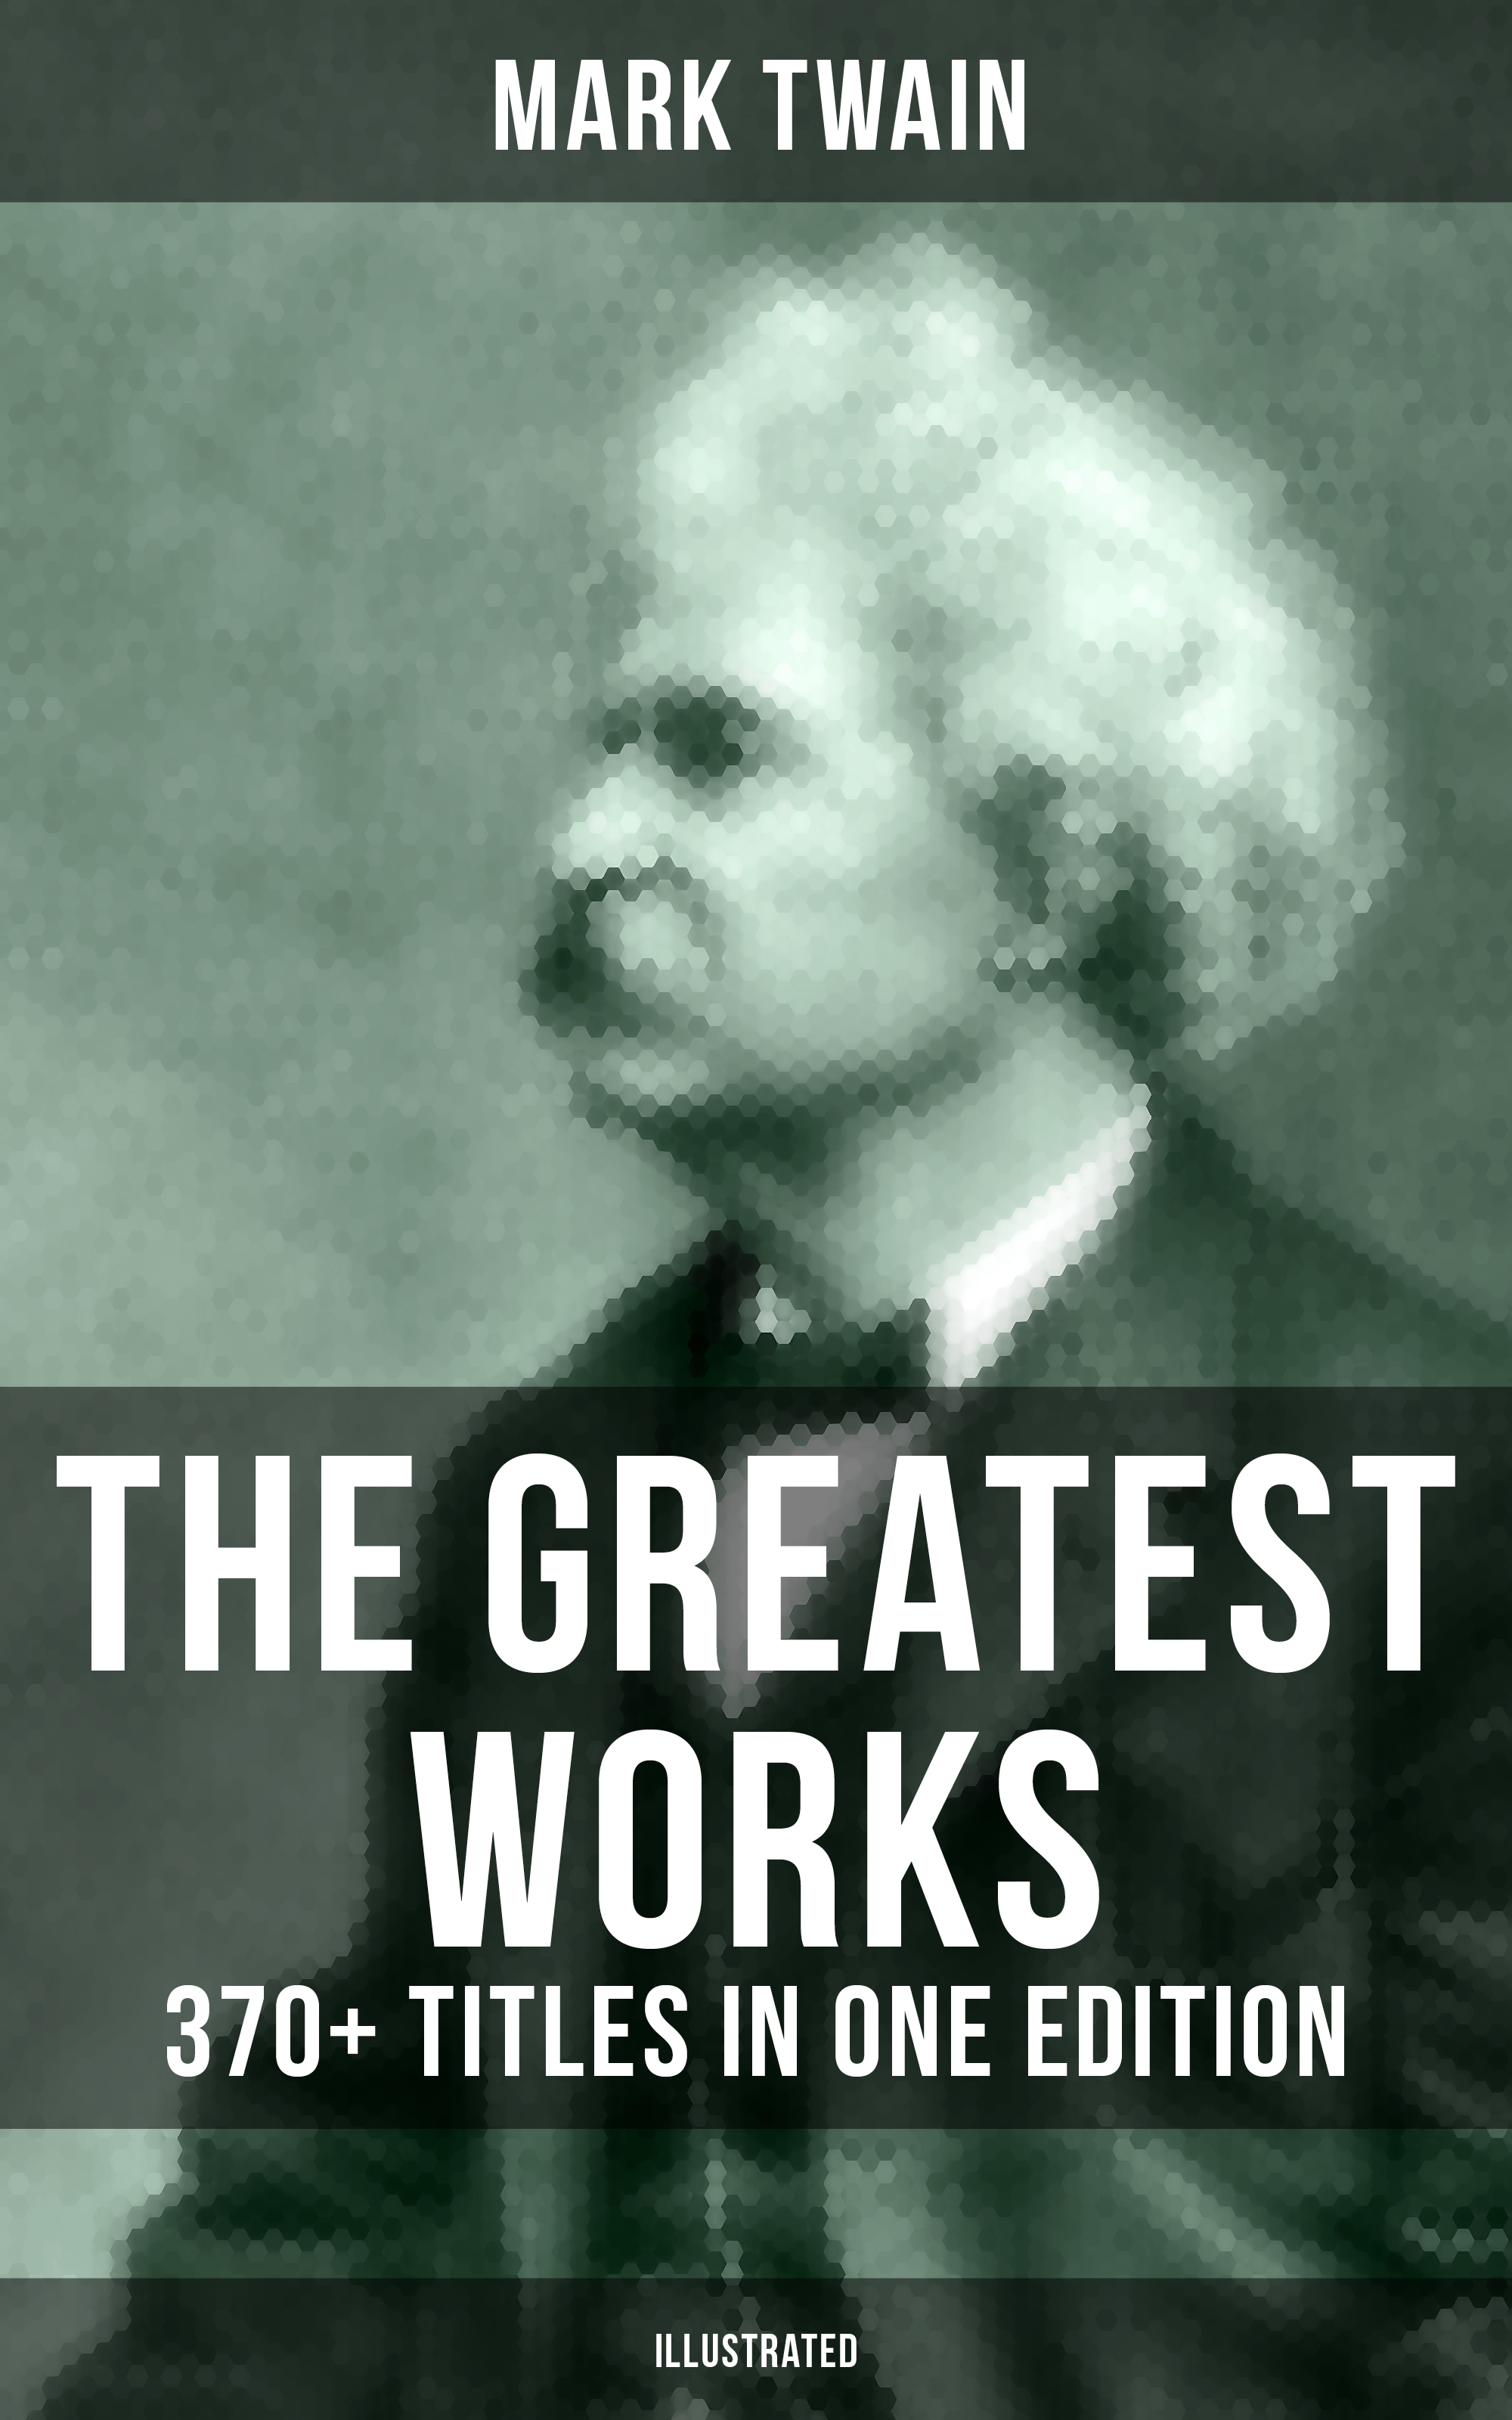 Mark Twain The Greatest Works of Mark Twain: 370+ Titles in One Edition (Illustrated)